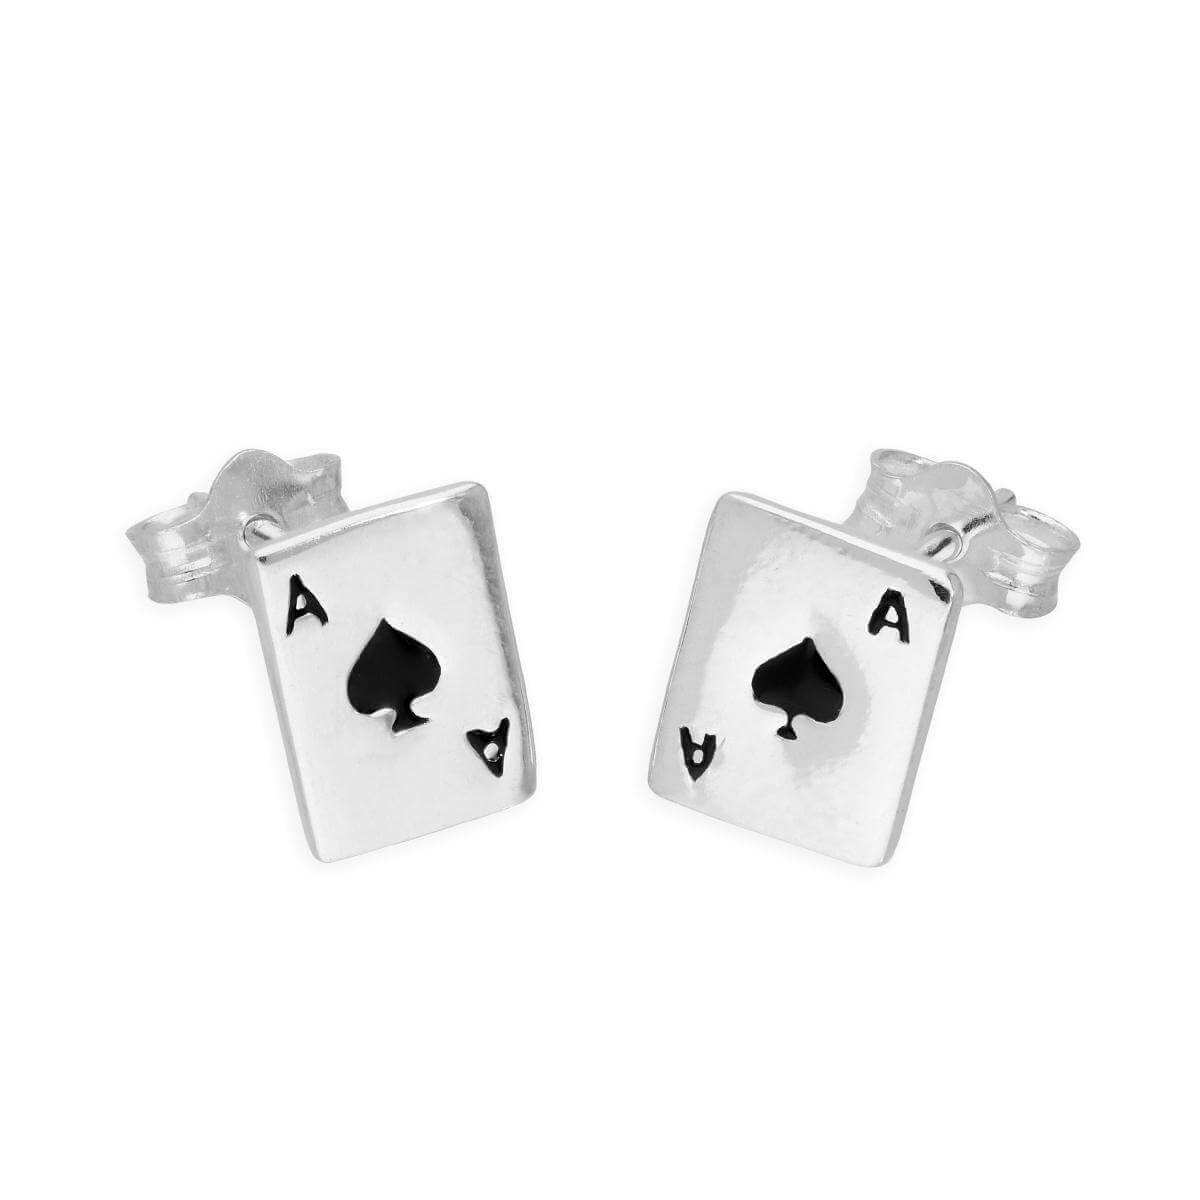 Sterling Silver & Black Enamel Ace of Spades Stud Earrings